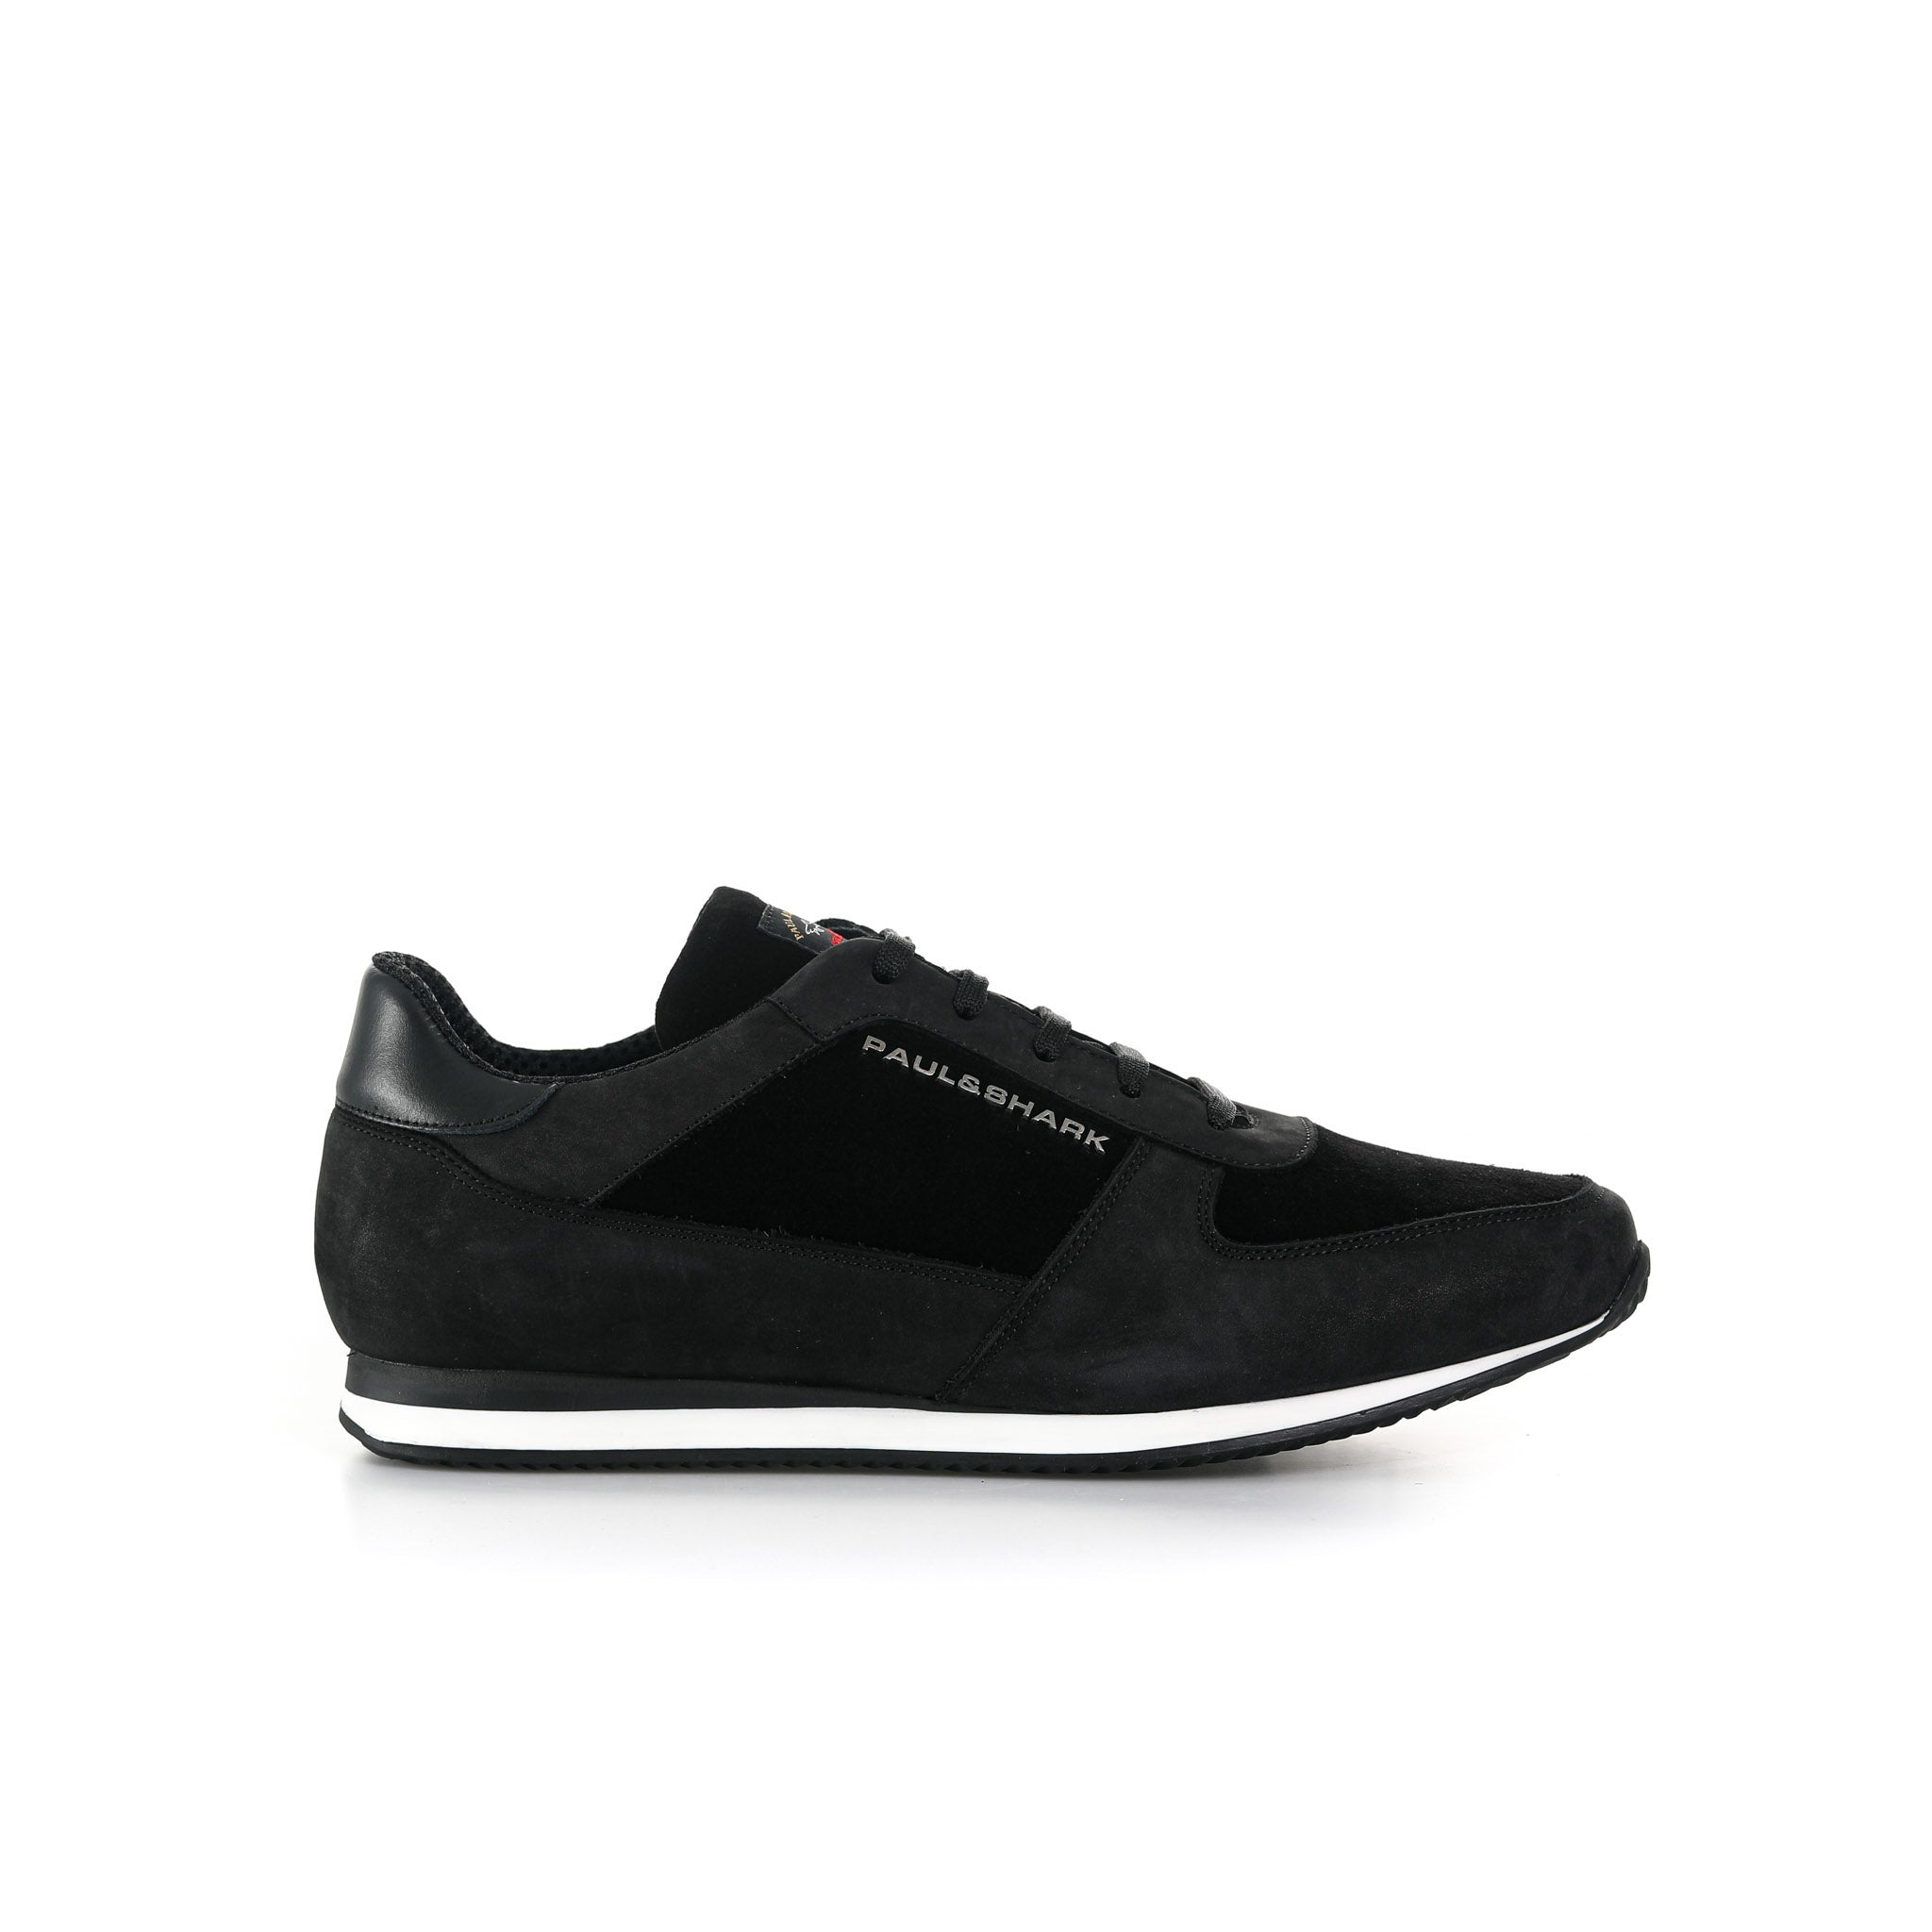 Paul & Shark Suede Sneakers-PAUL & SHARK-SHOPATVOI.COM - Luxury Fashion Designer